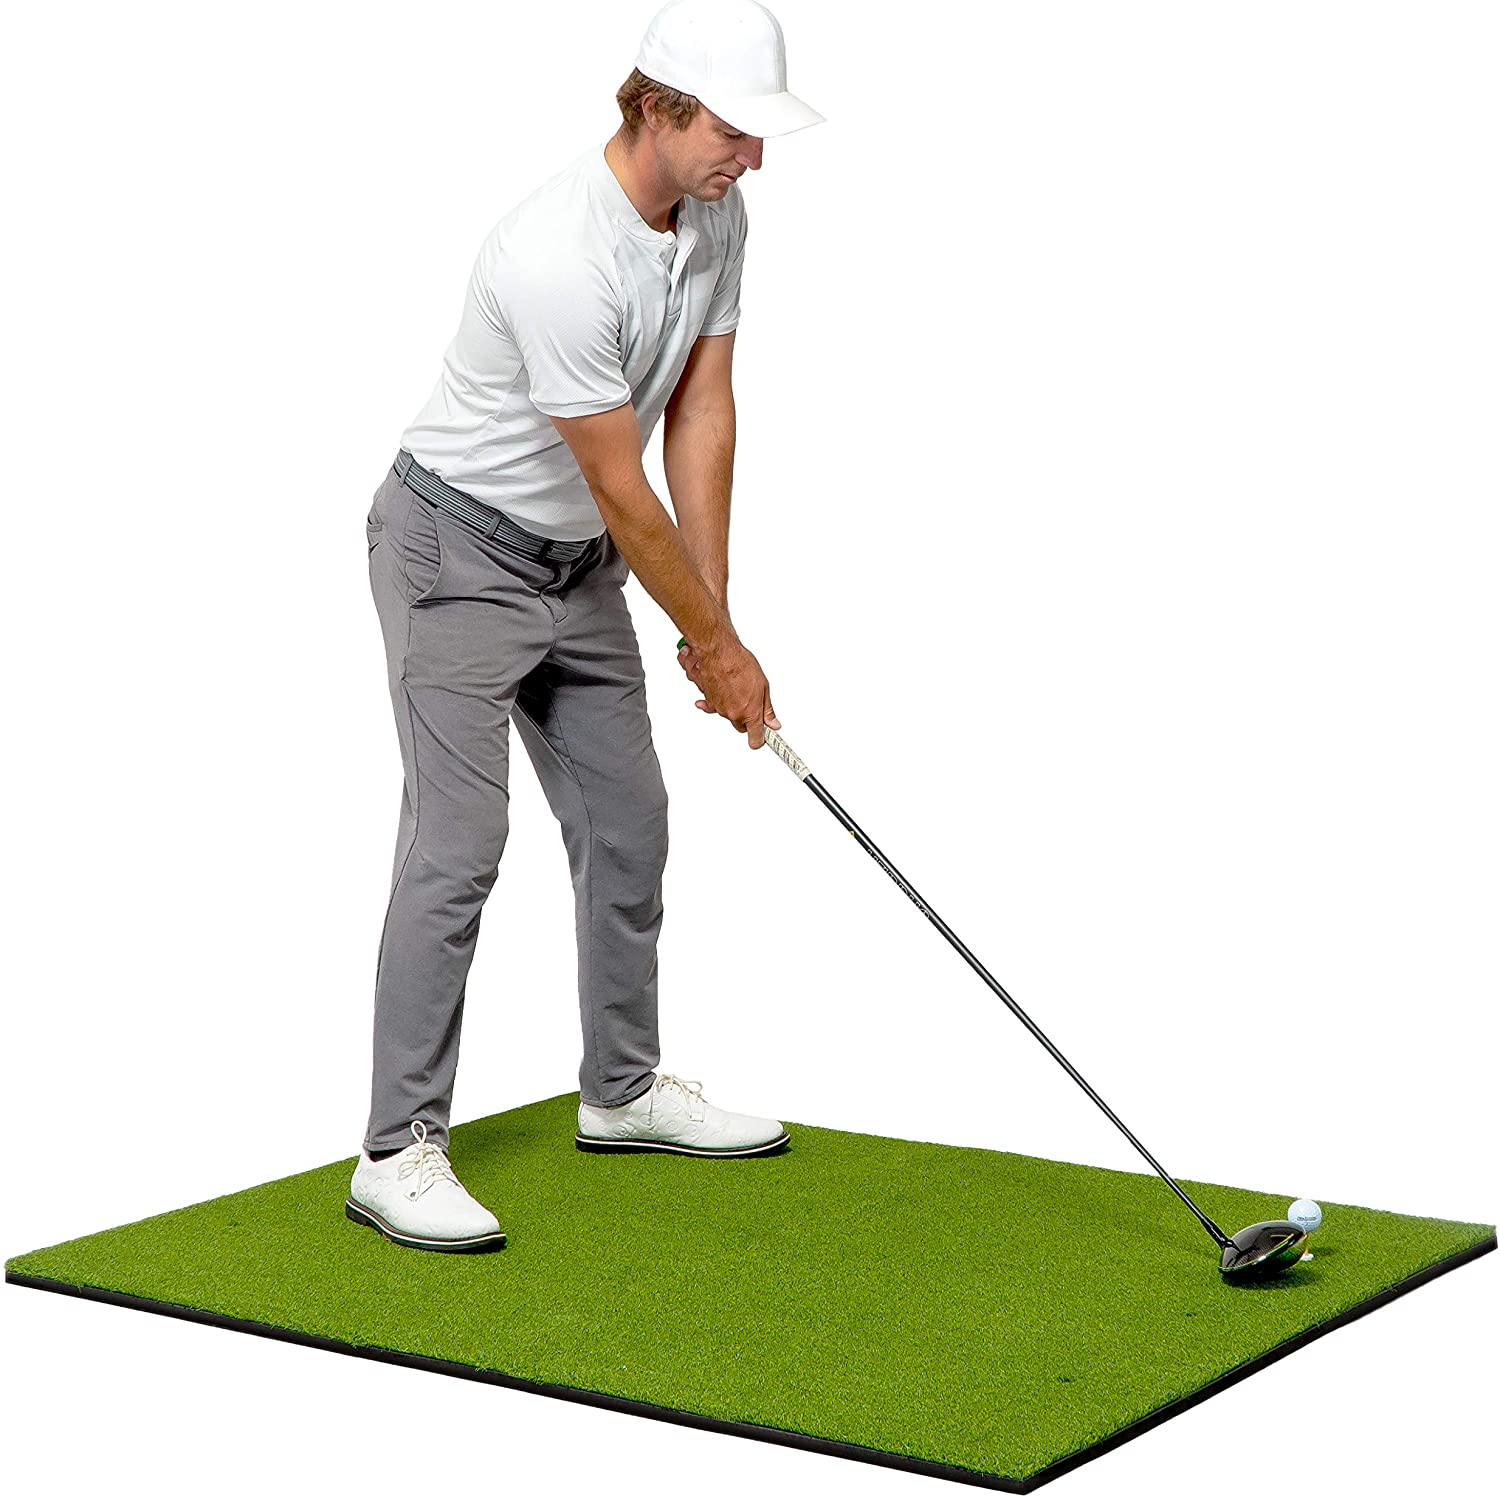 GoSports Golf Hitting Mats - Artificial Turf Mat for Indoor/Outdoor Practice - Choose Your Size - Includes 3 Rubber Tees